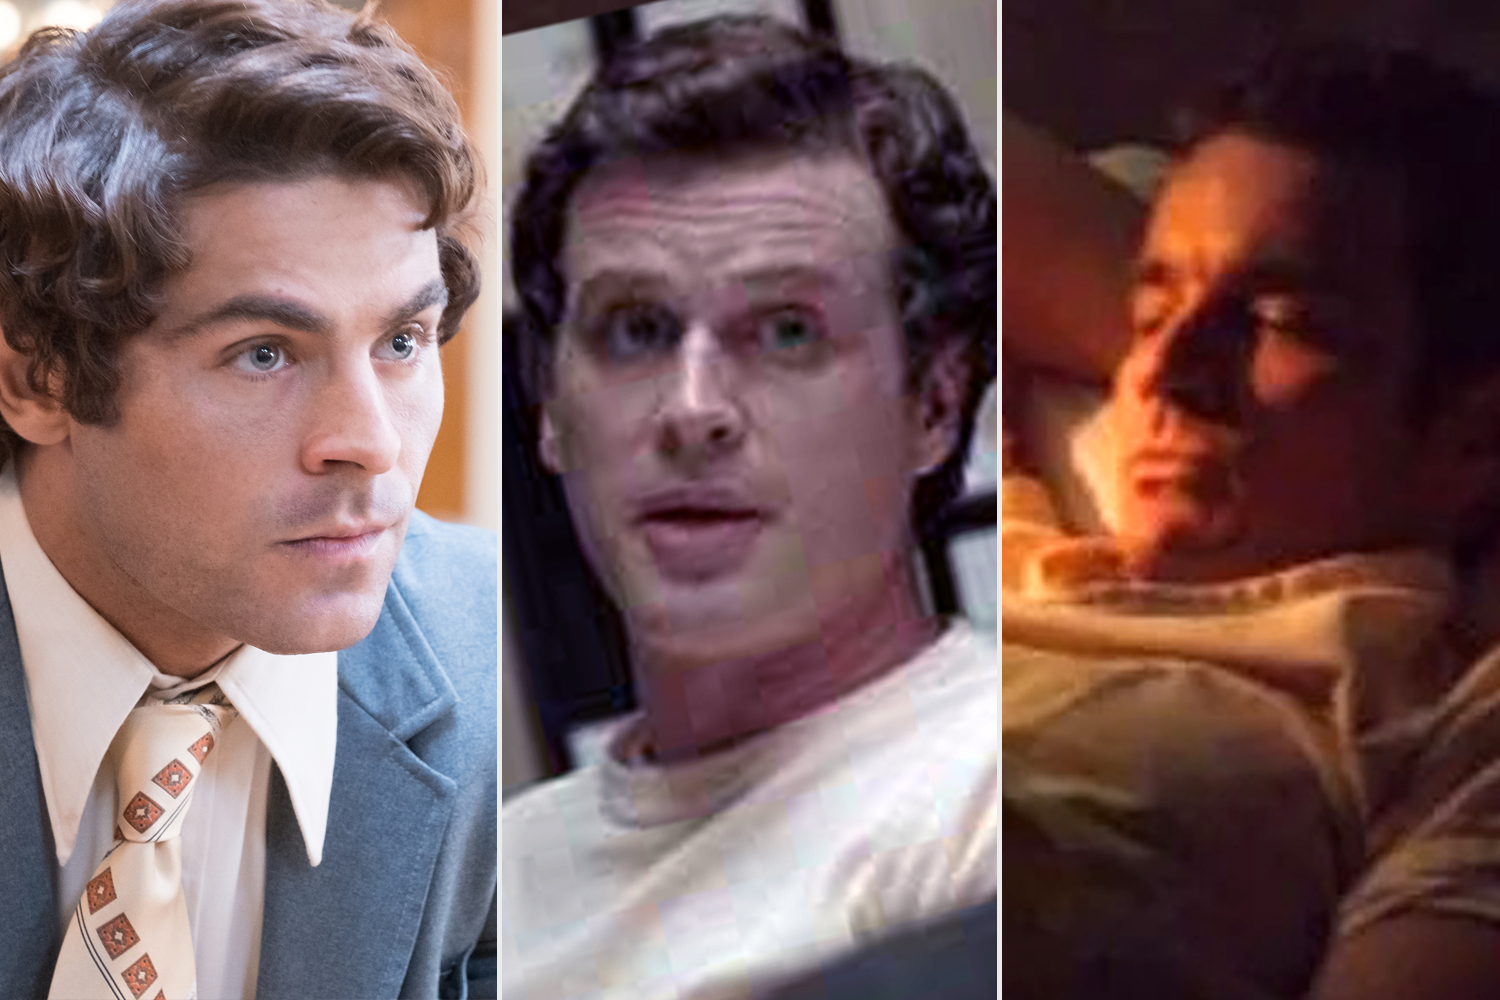 From L to R: Zac Efron, Cary Elwes and James Marsters as Ted Bundy